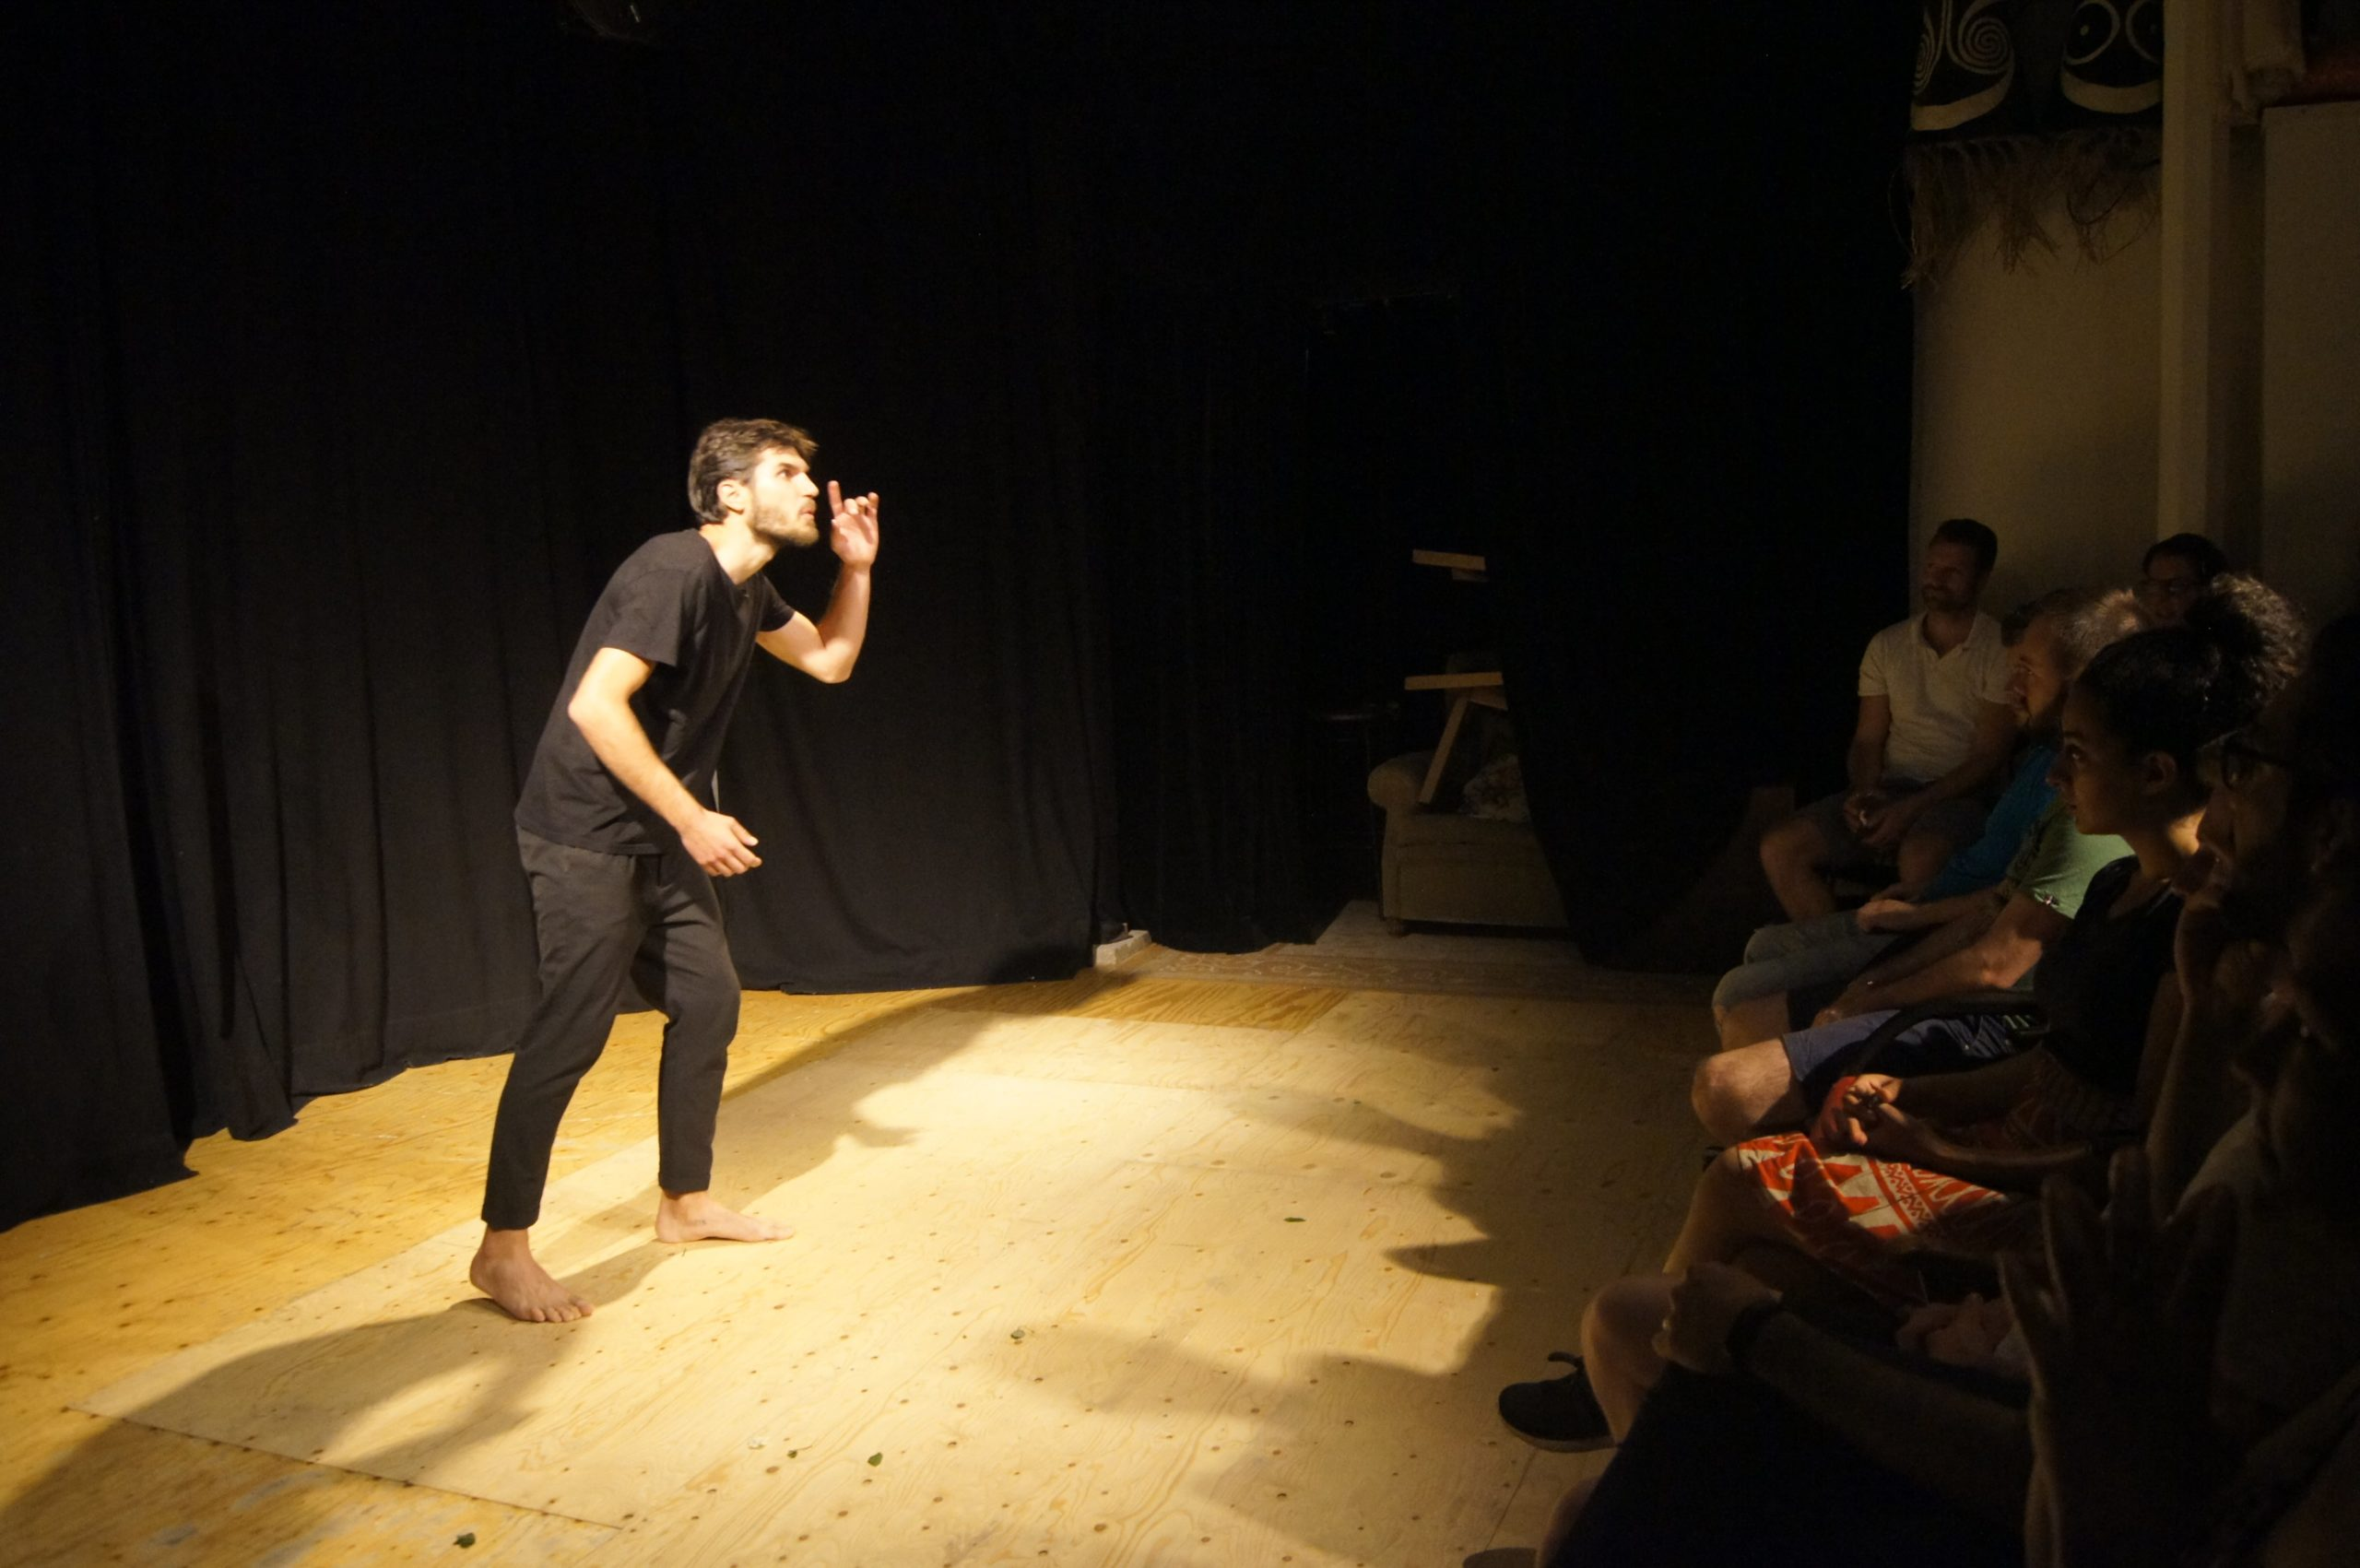 Theatre performance, man on stage with black clothes, standing in front of audience, barefoot. He acts like he hears something